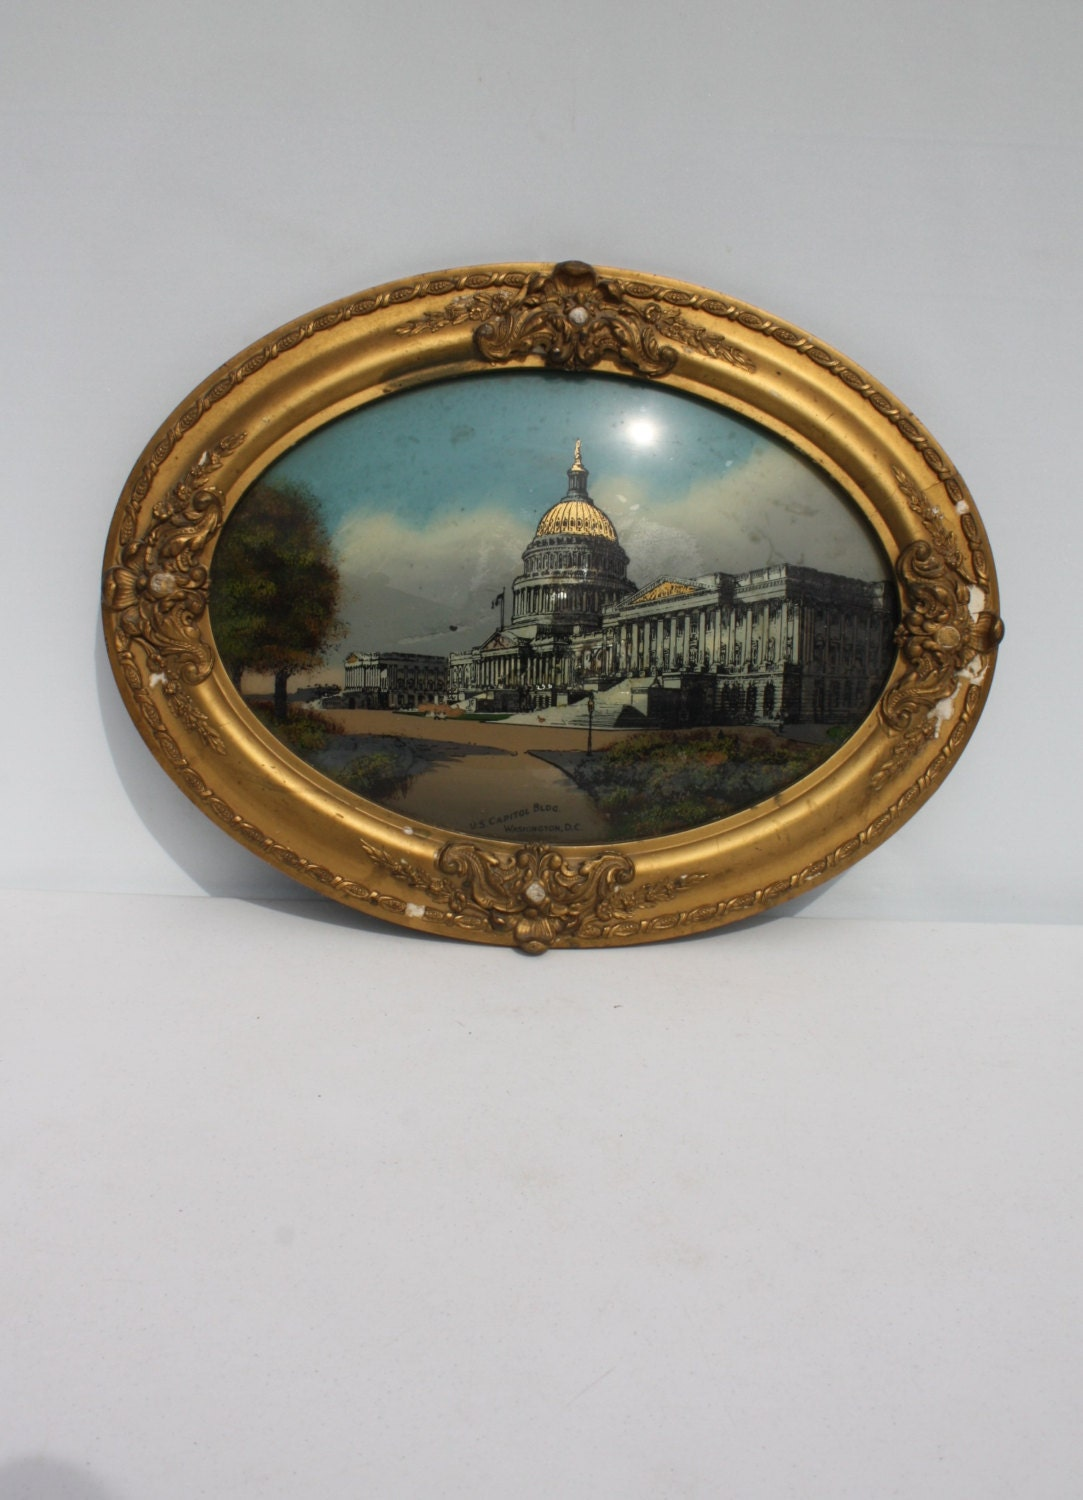 Vintage Oval Frame Convex Bubble Glass Gesso Gold Ornate